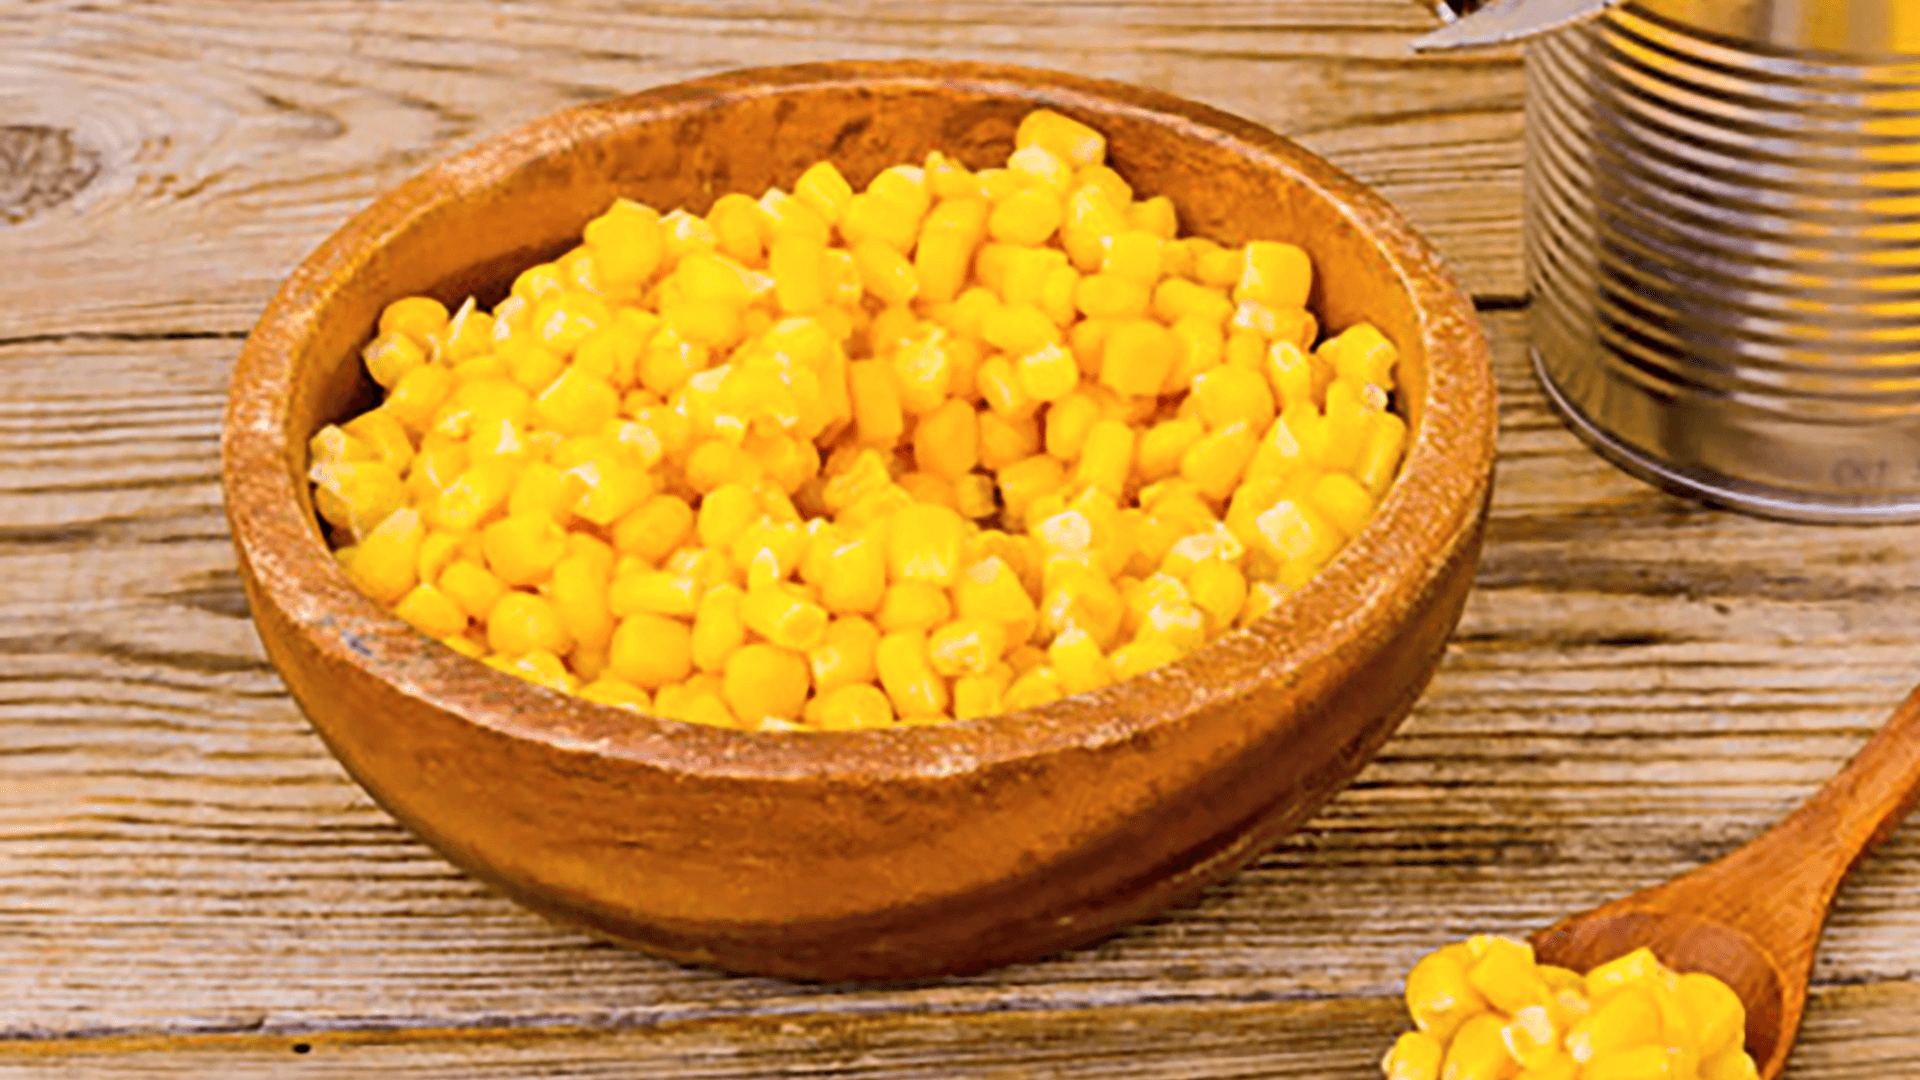 Canned Corn for Sweet Corn Salad